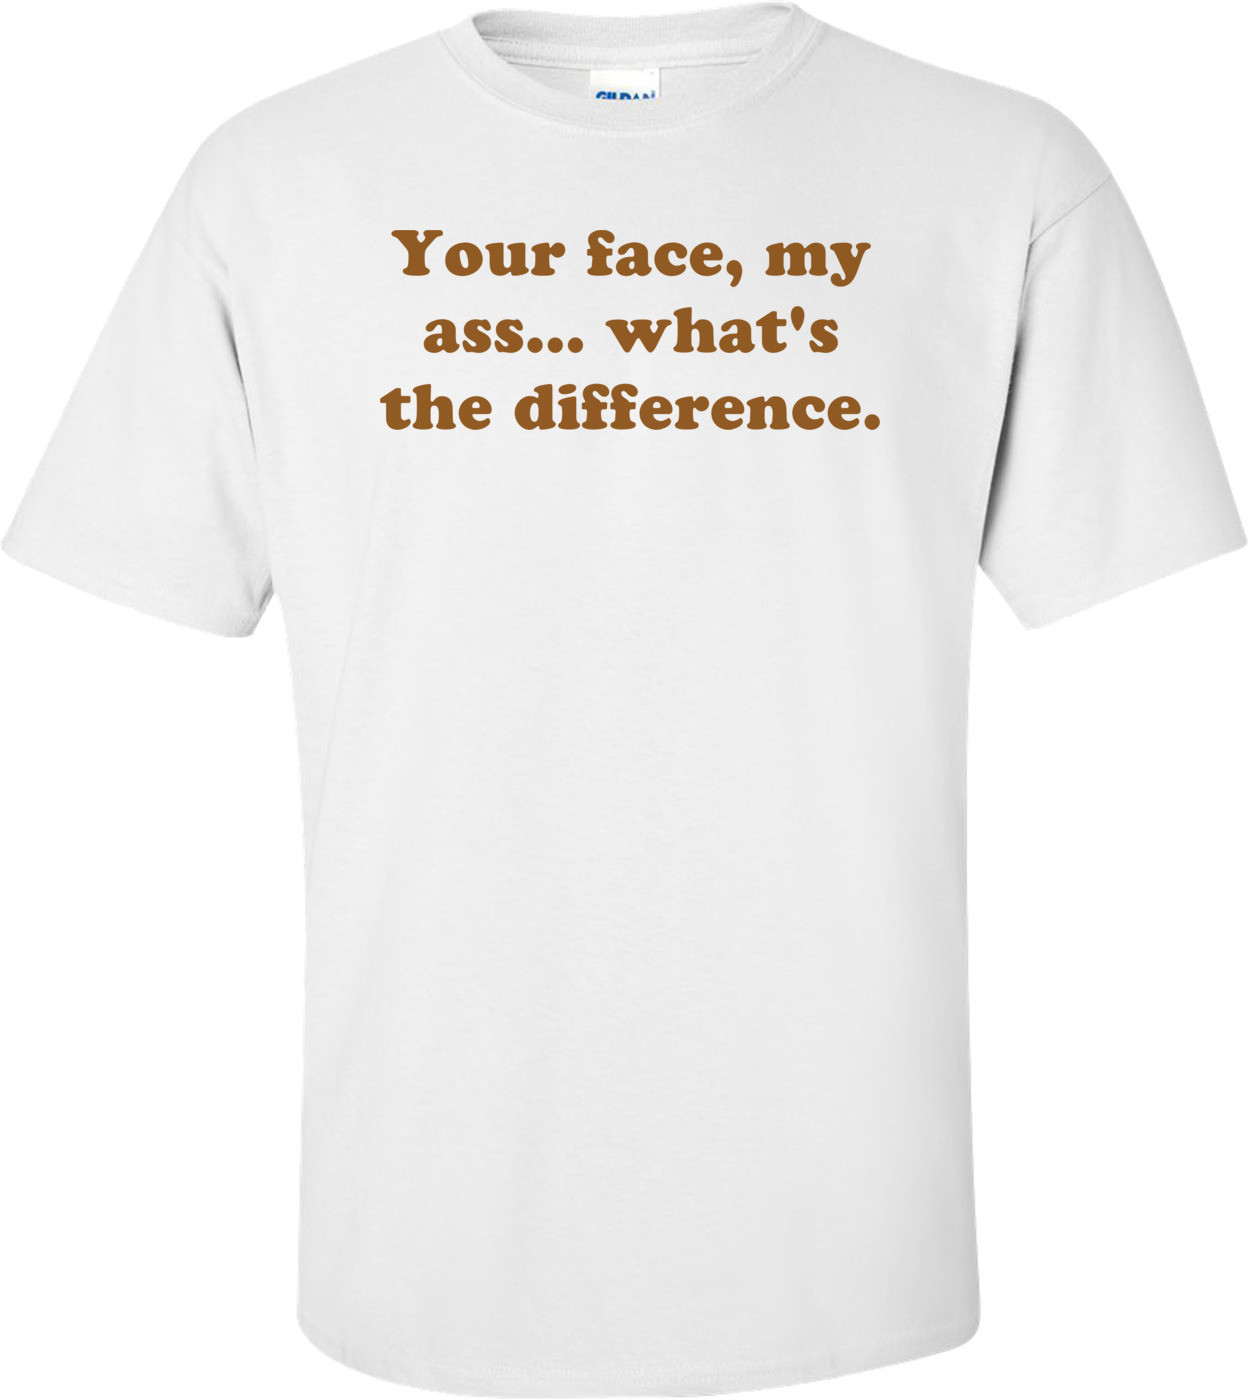 Your face, my ass... what's the difference. Shirt